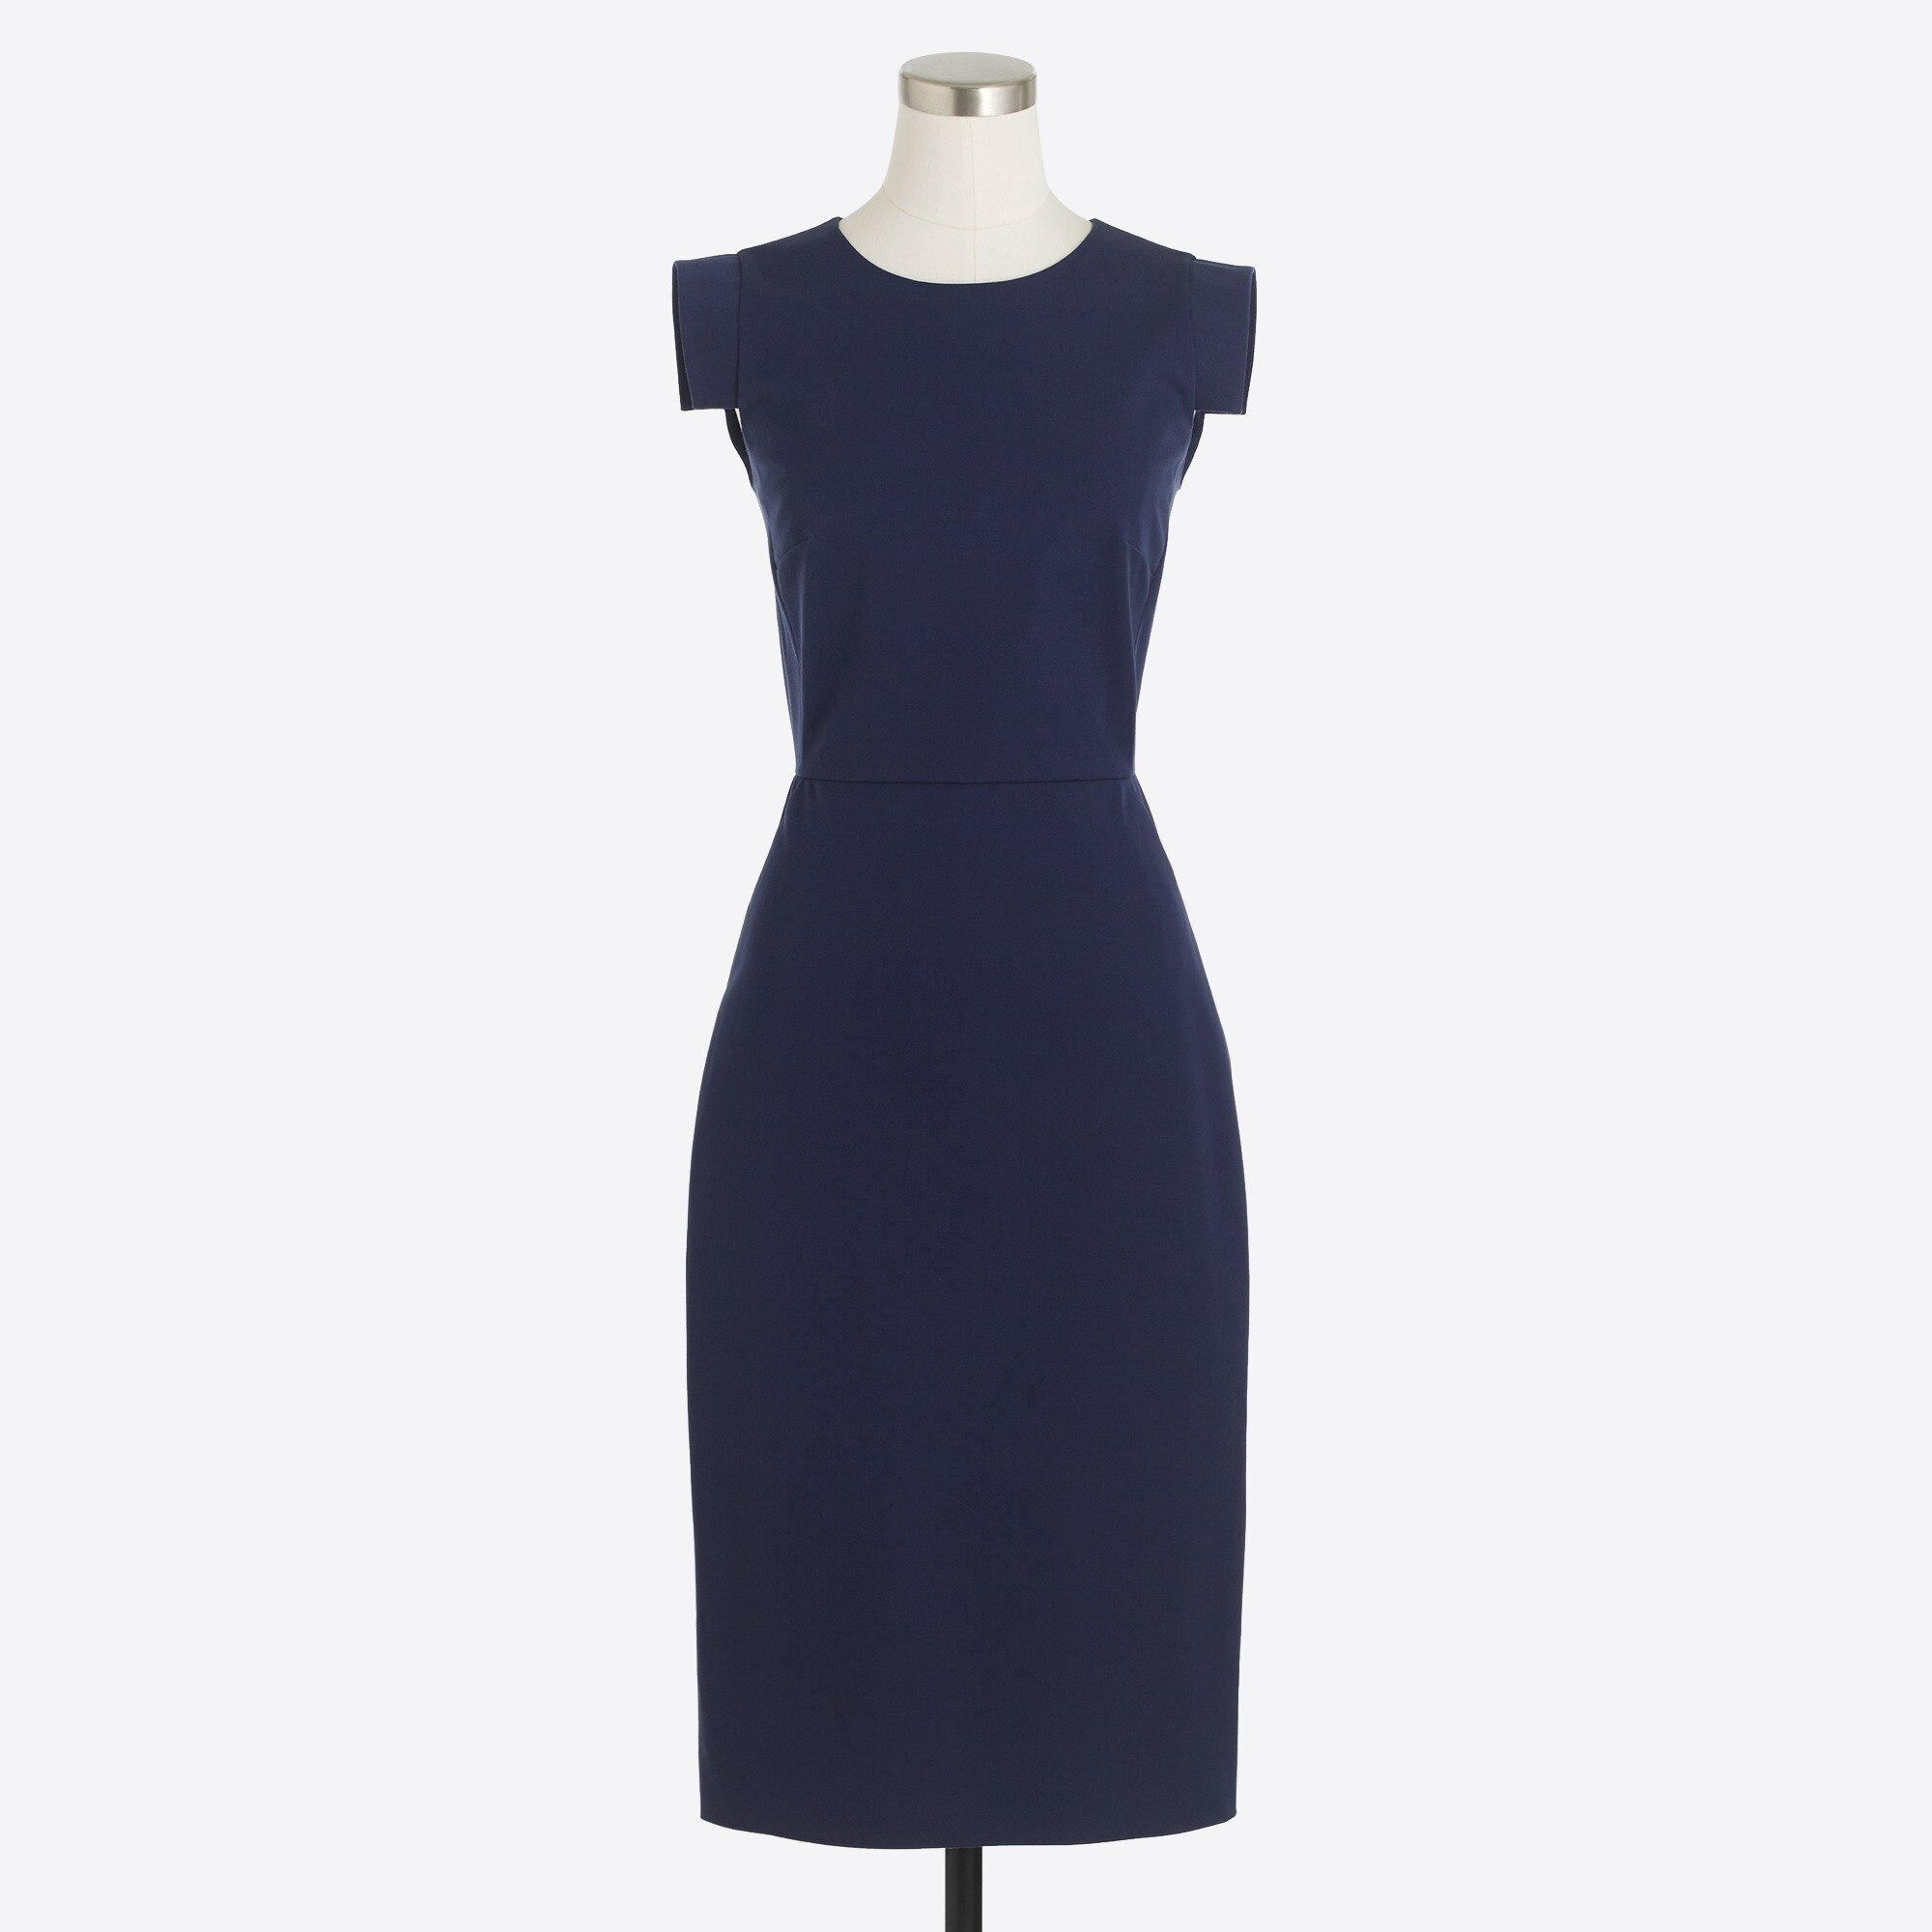 Image 2 for Cap-sleeve sheath dress